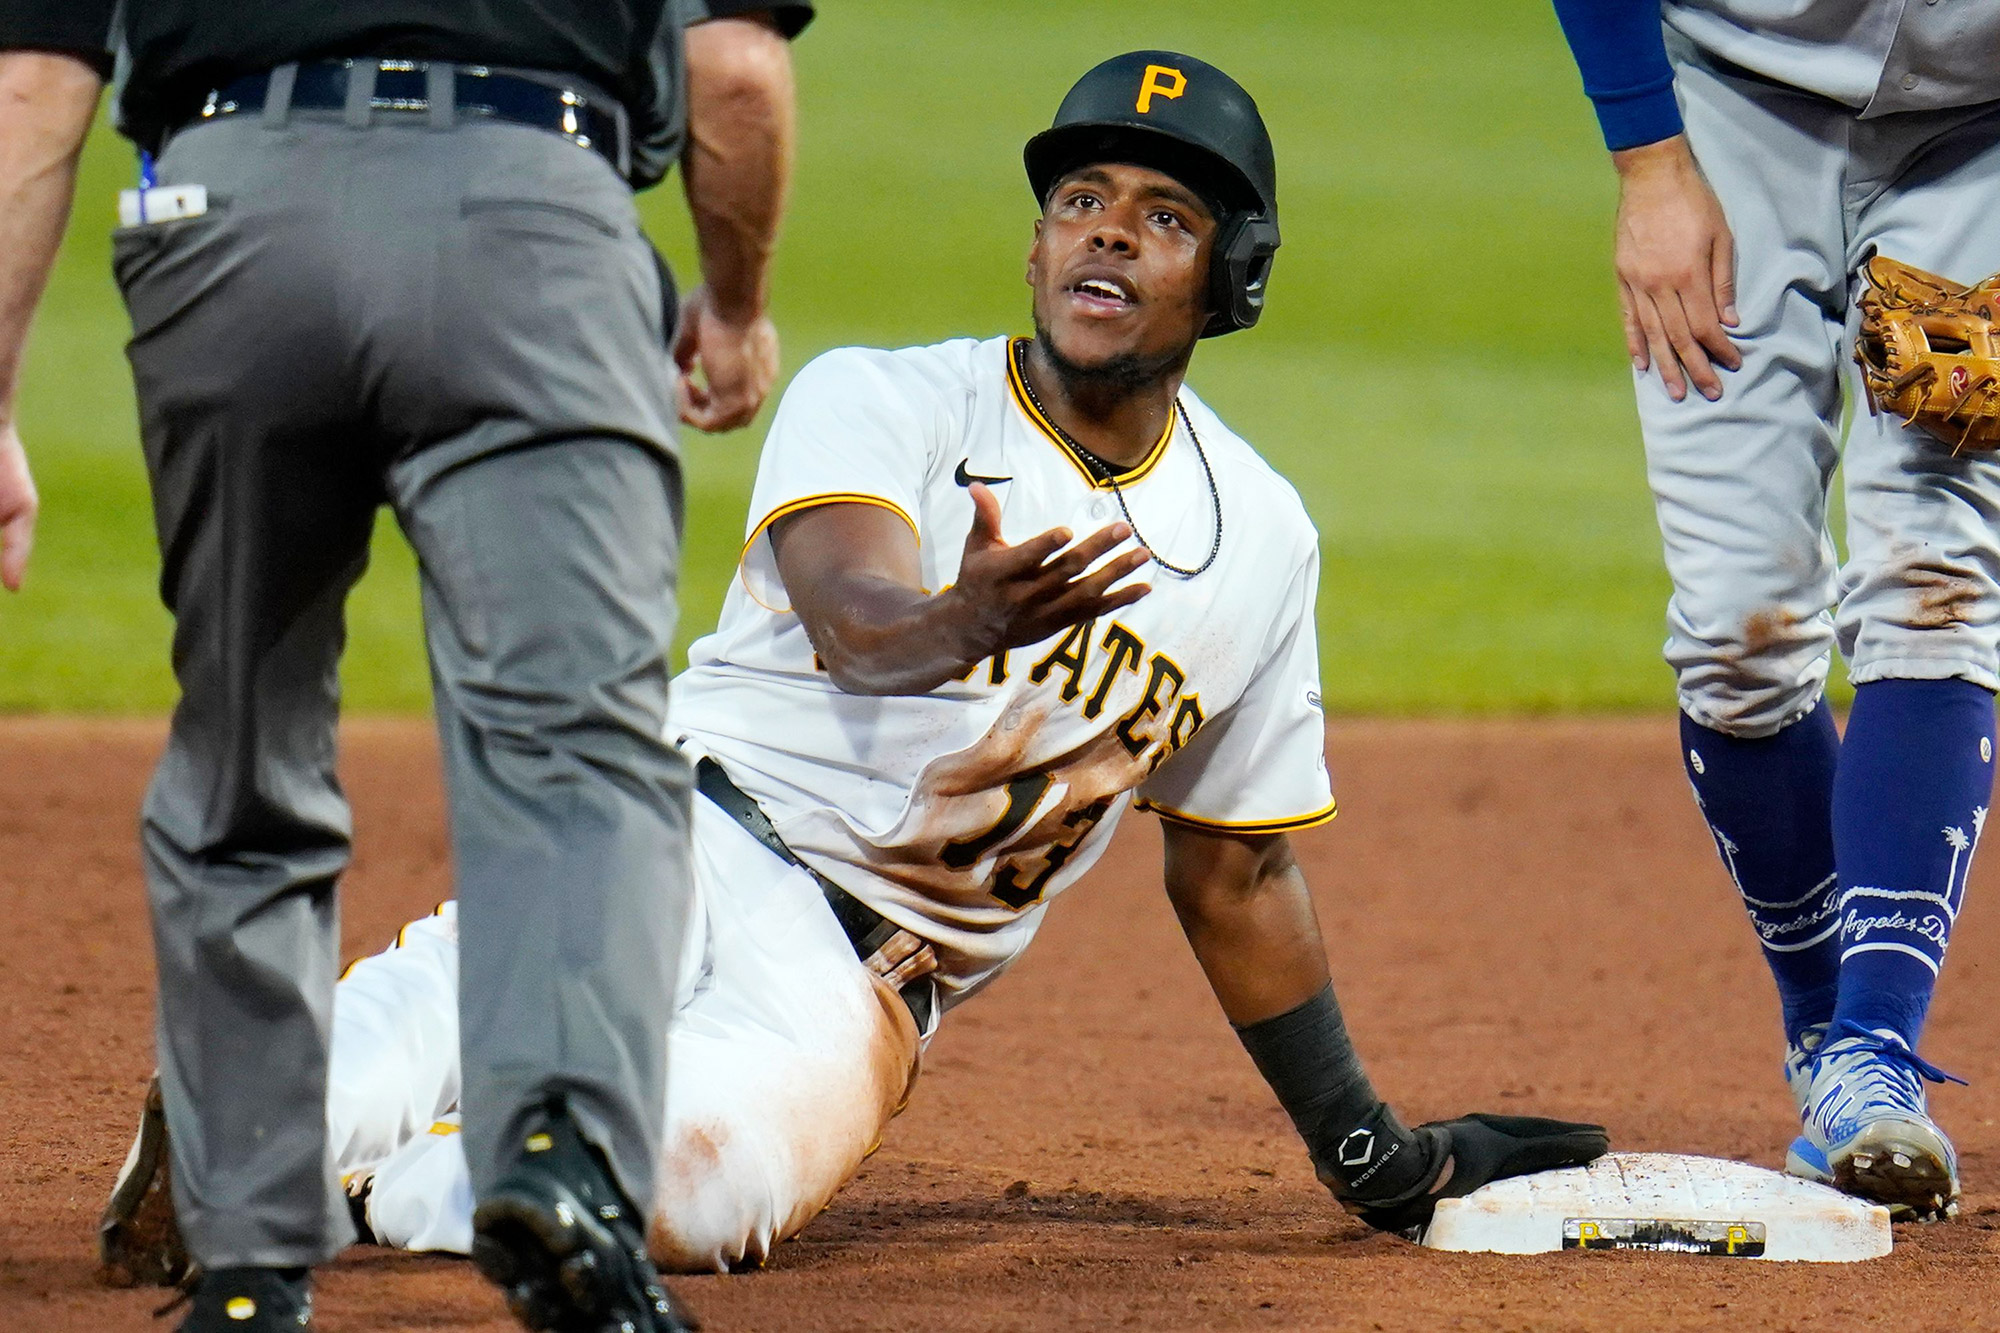 Pittsburgh Pirates' Ke'Bryan Hayes (13) appeals to umpire Dan Iassogna, left, after sliding past second base and being tagged out by Los Angeles Dodgers second baseman Chris Taylor during the third inning of a baseball game in Pittsburgh, . Hayes remained out and the inning ended Dodgers Pirates Baseball, Pittsburgh, United States - 08 Jun 2021